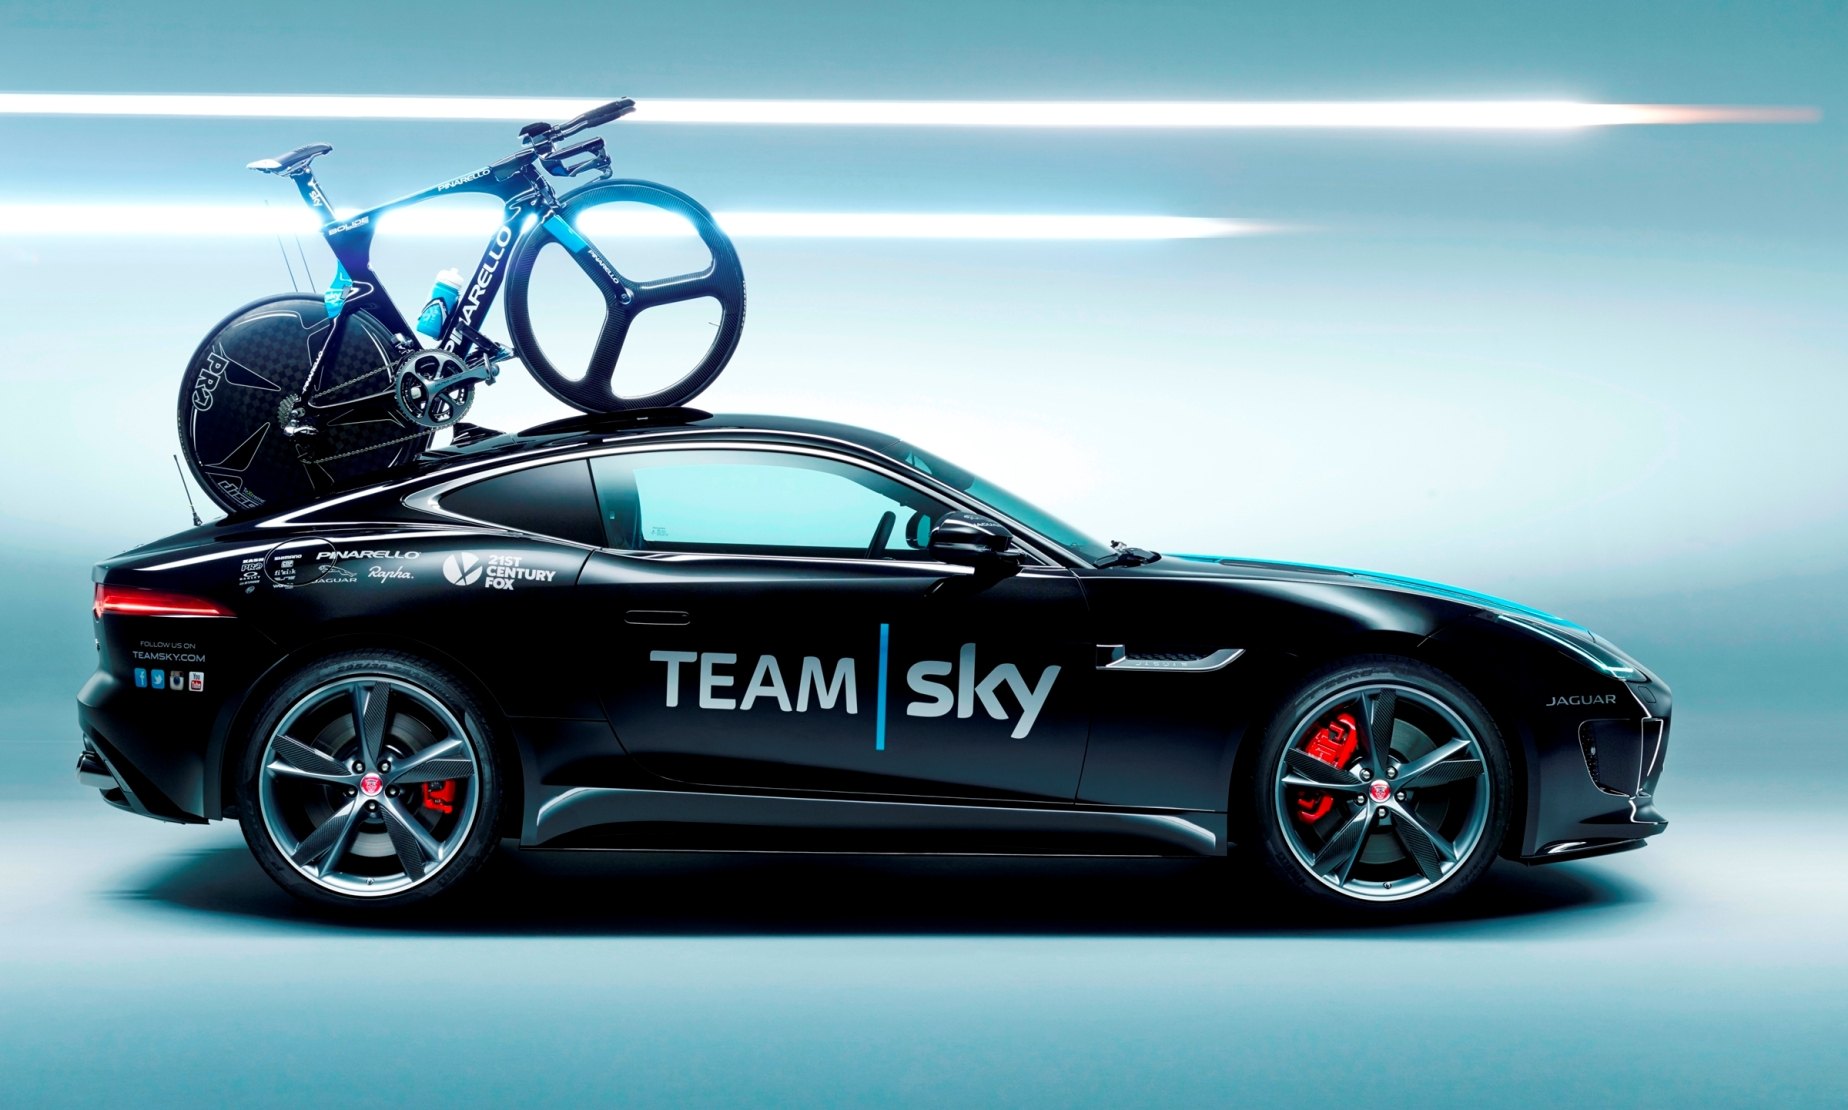 jaguar special ops f type coupe and xfr s sportbrake for team sky tour de france cyclists. Black Bedroom Furniture Sets. Home Design Ideas